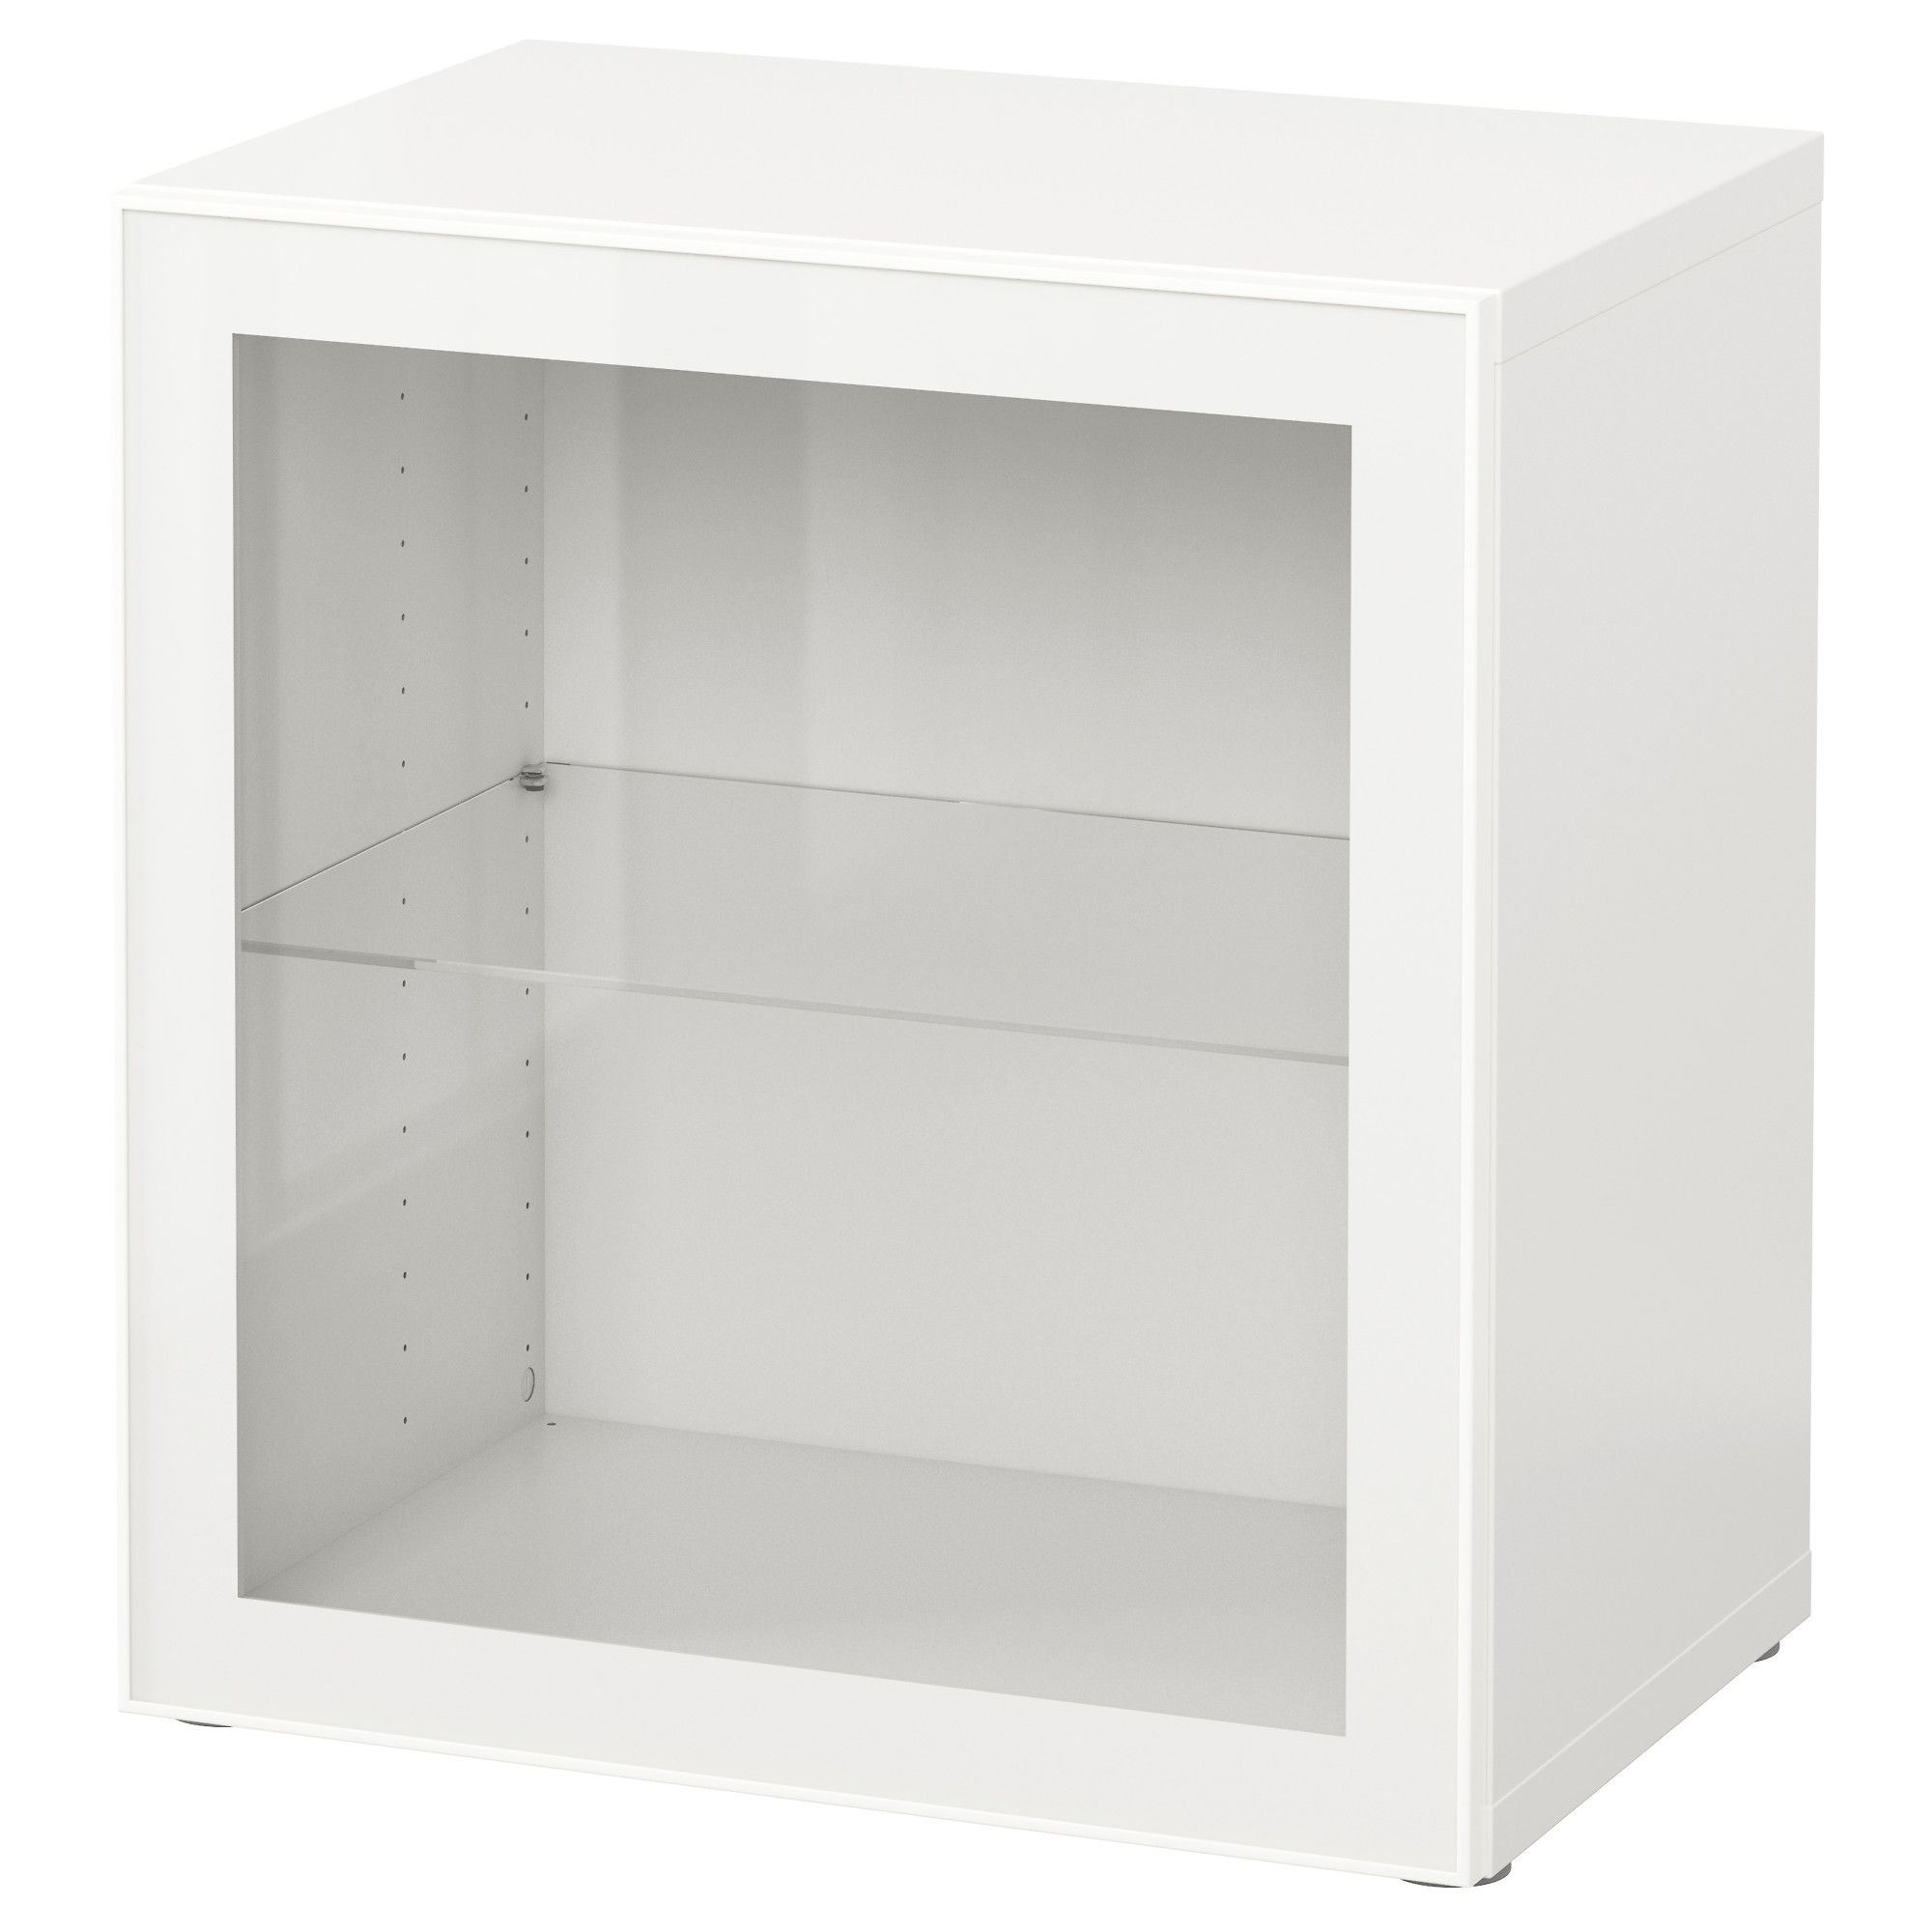 BEST… Shelf unit with glass door white Glassvik white clear glass